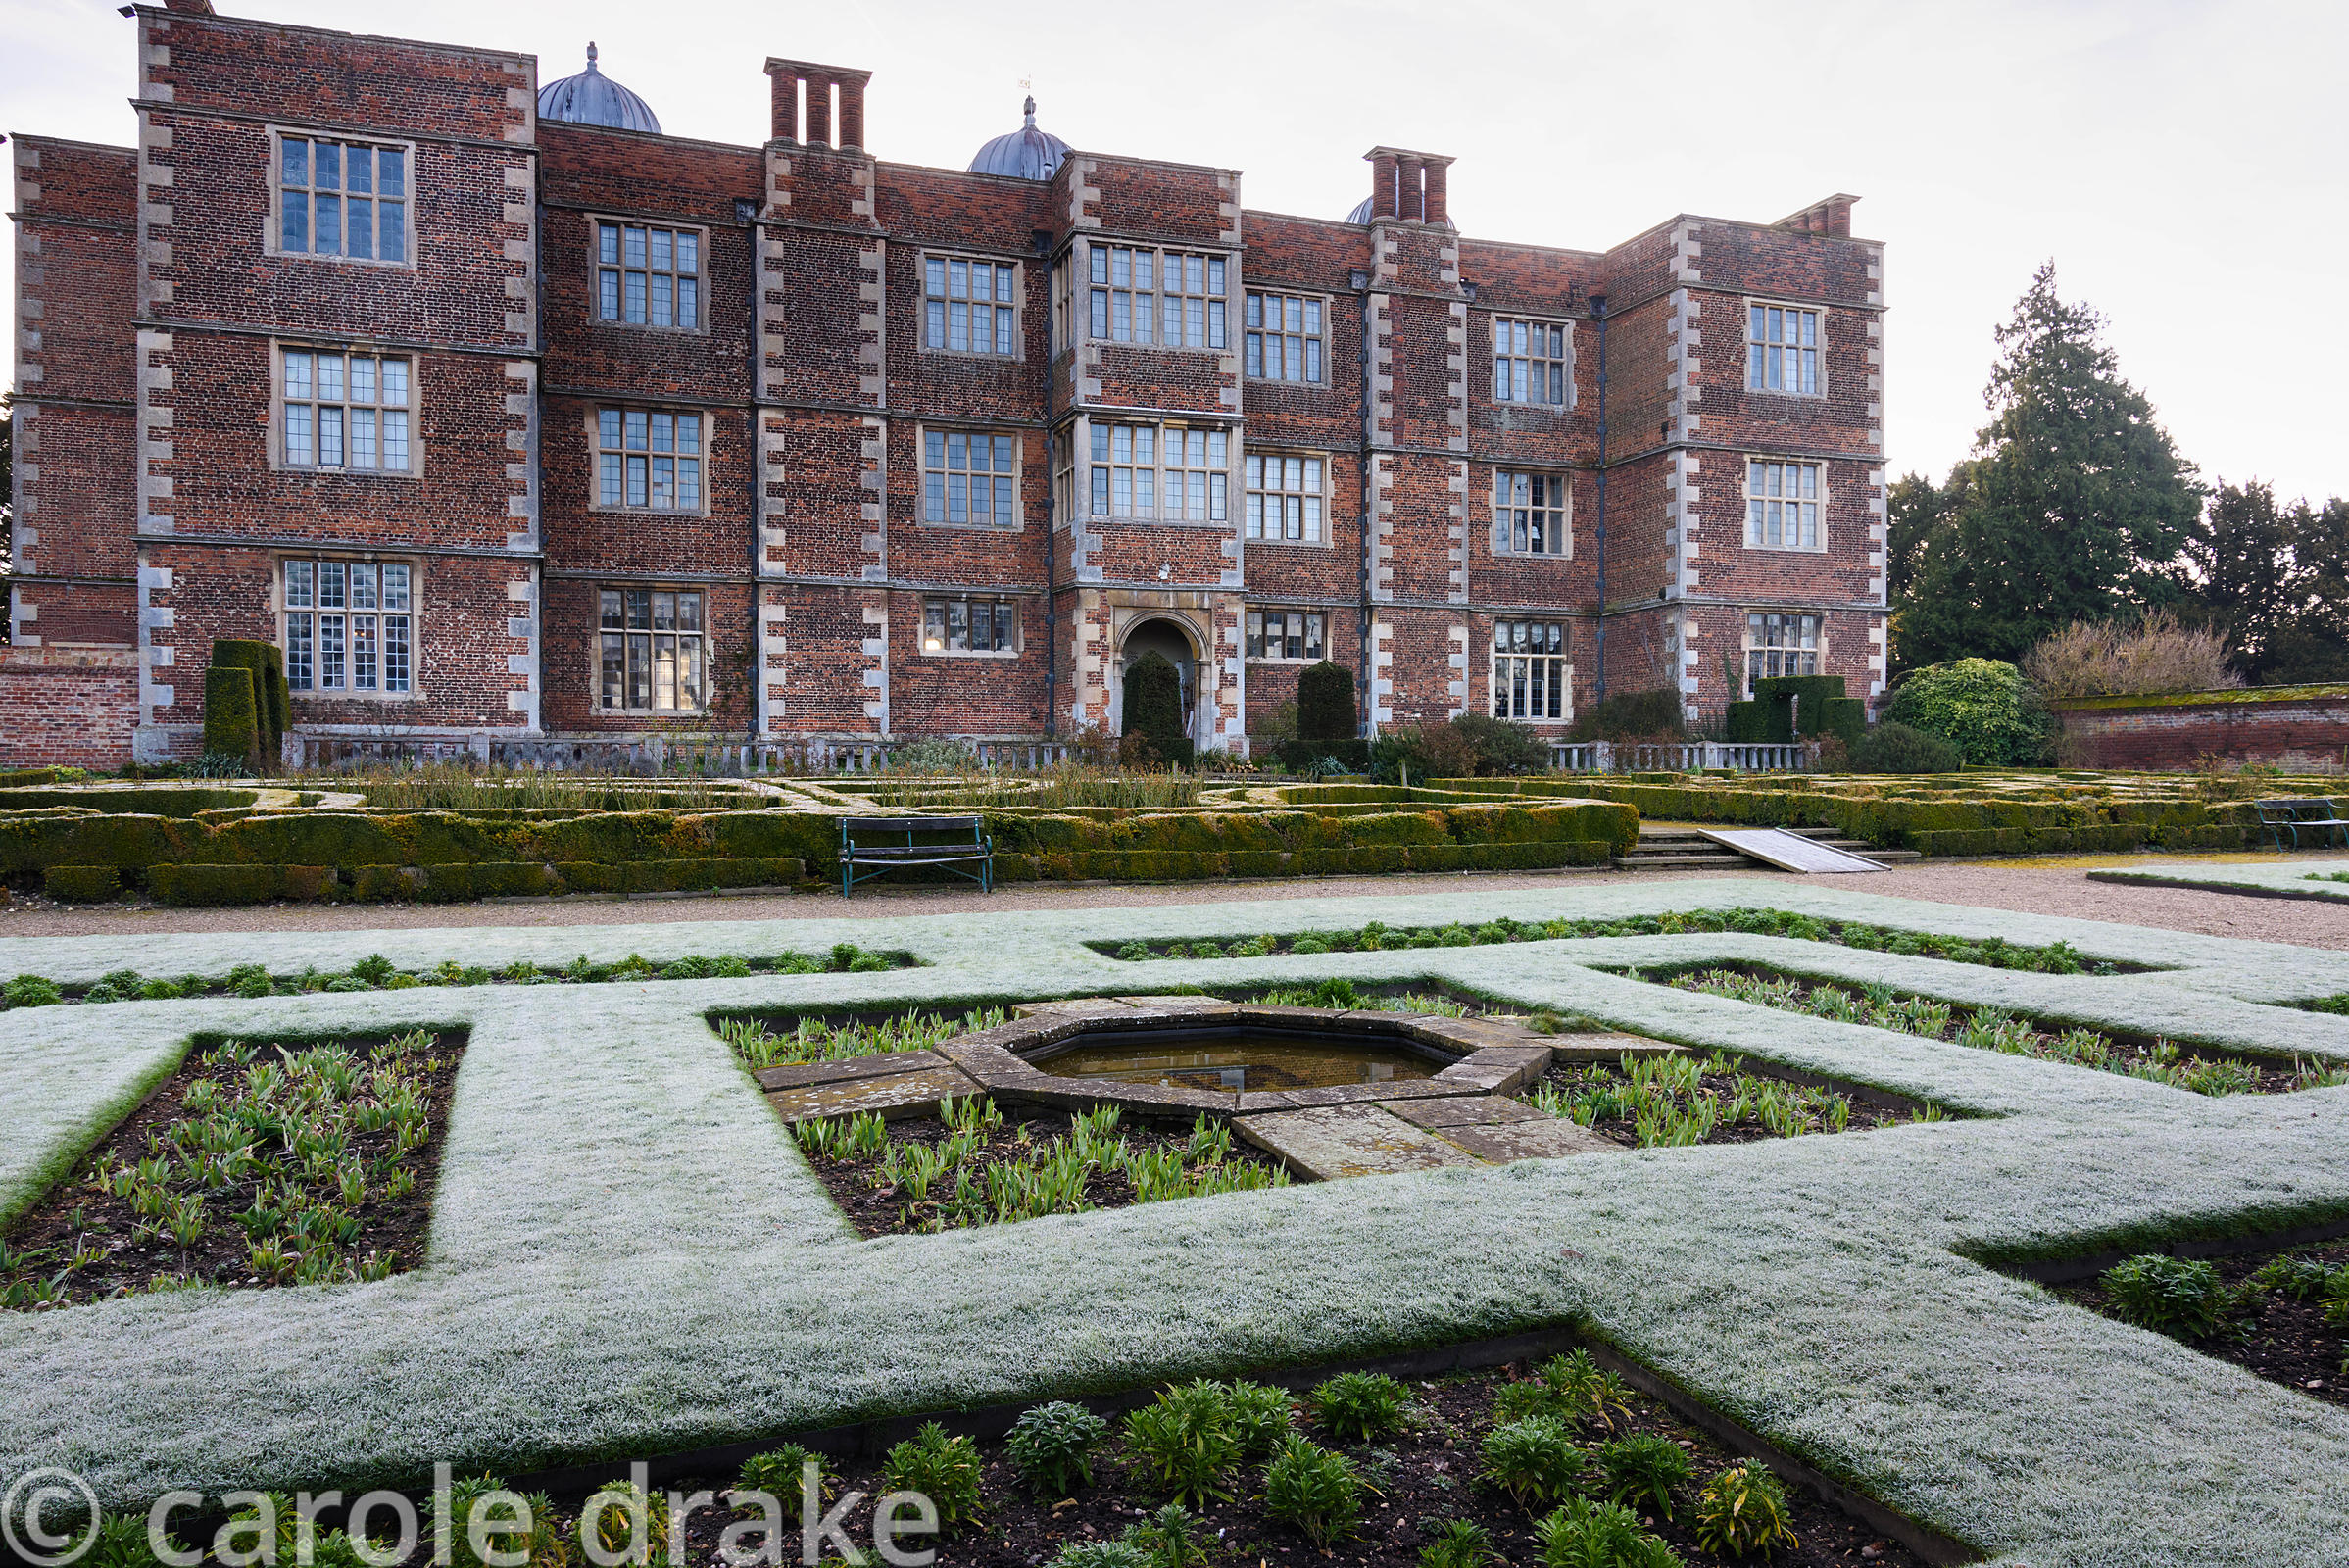 The West Garden at Doddington Hall, Lincolnshire on a frosty March morning